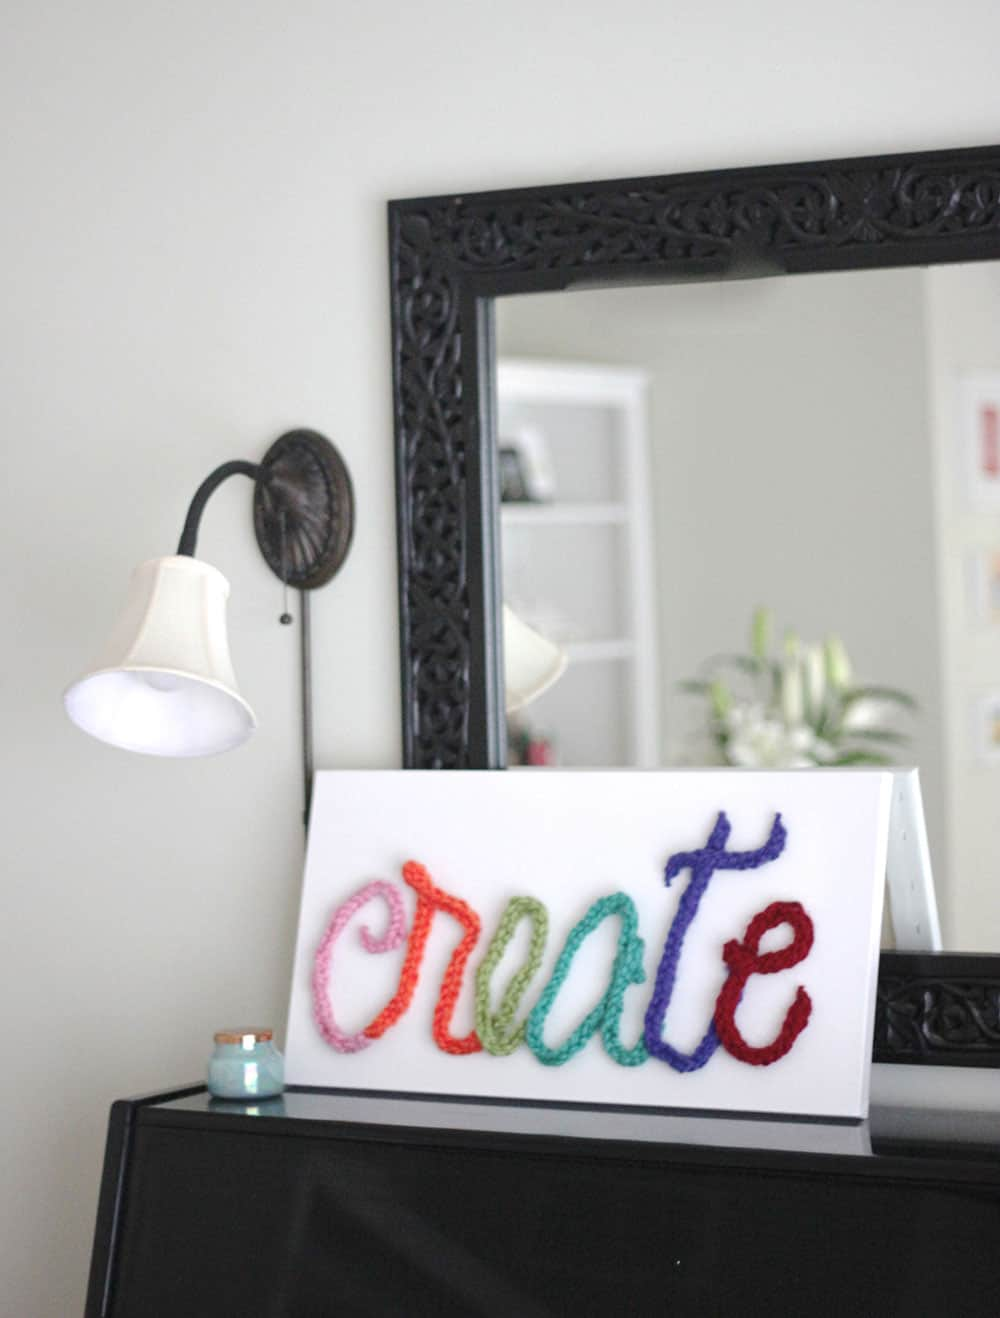 Sign art using finger knitting